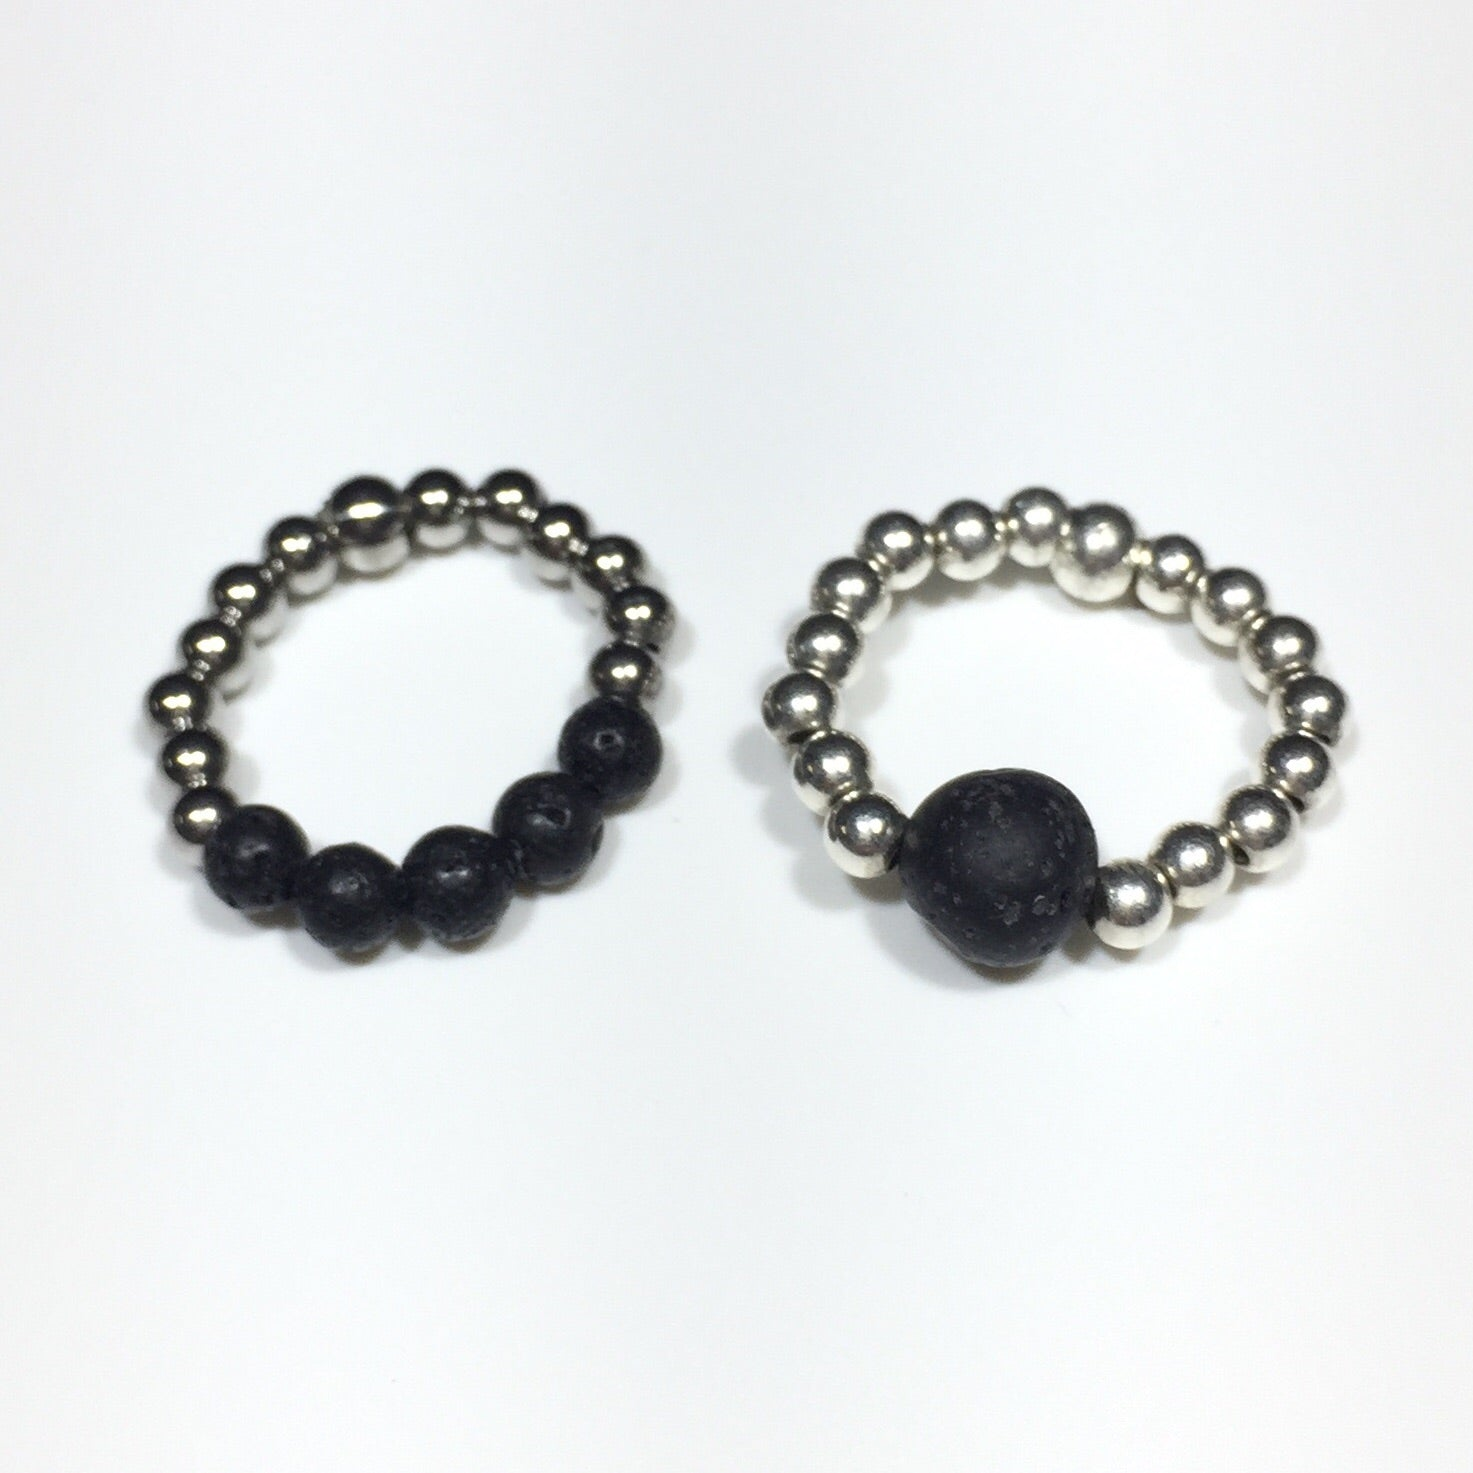 Lava Rock Oil Diffuser Rings #281